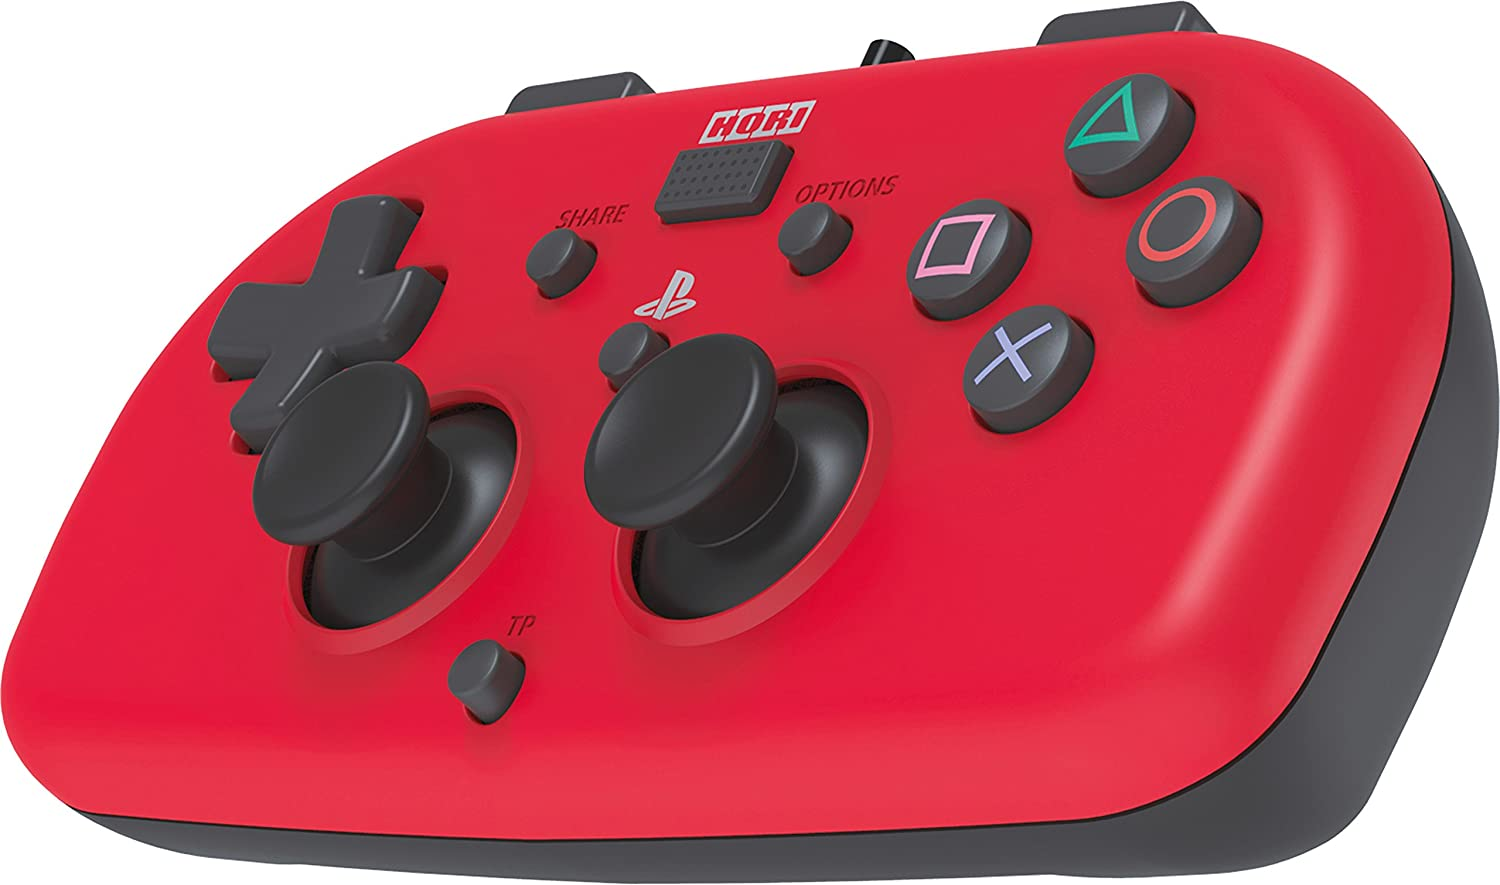 Hori - Mando Mini Con Cable, Color Rojo (PS4): playstation 4: Amazon.es: Videojuegos